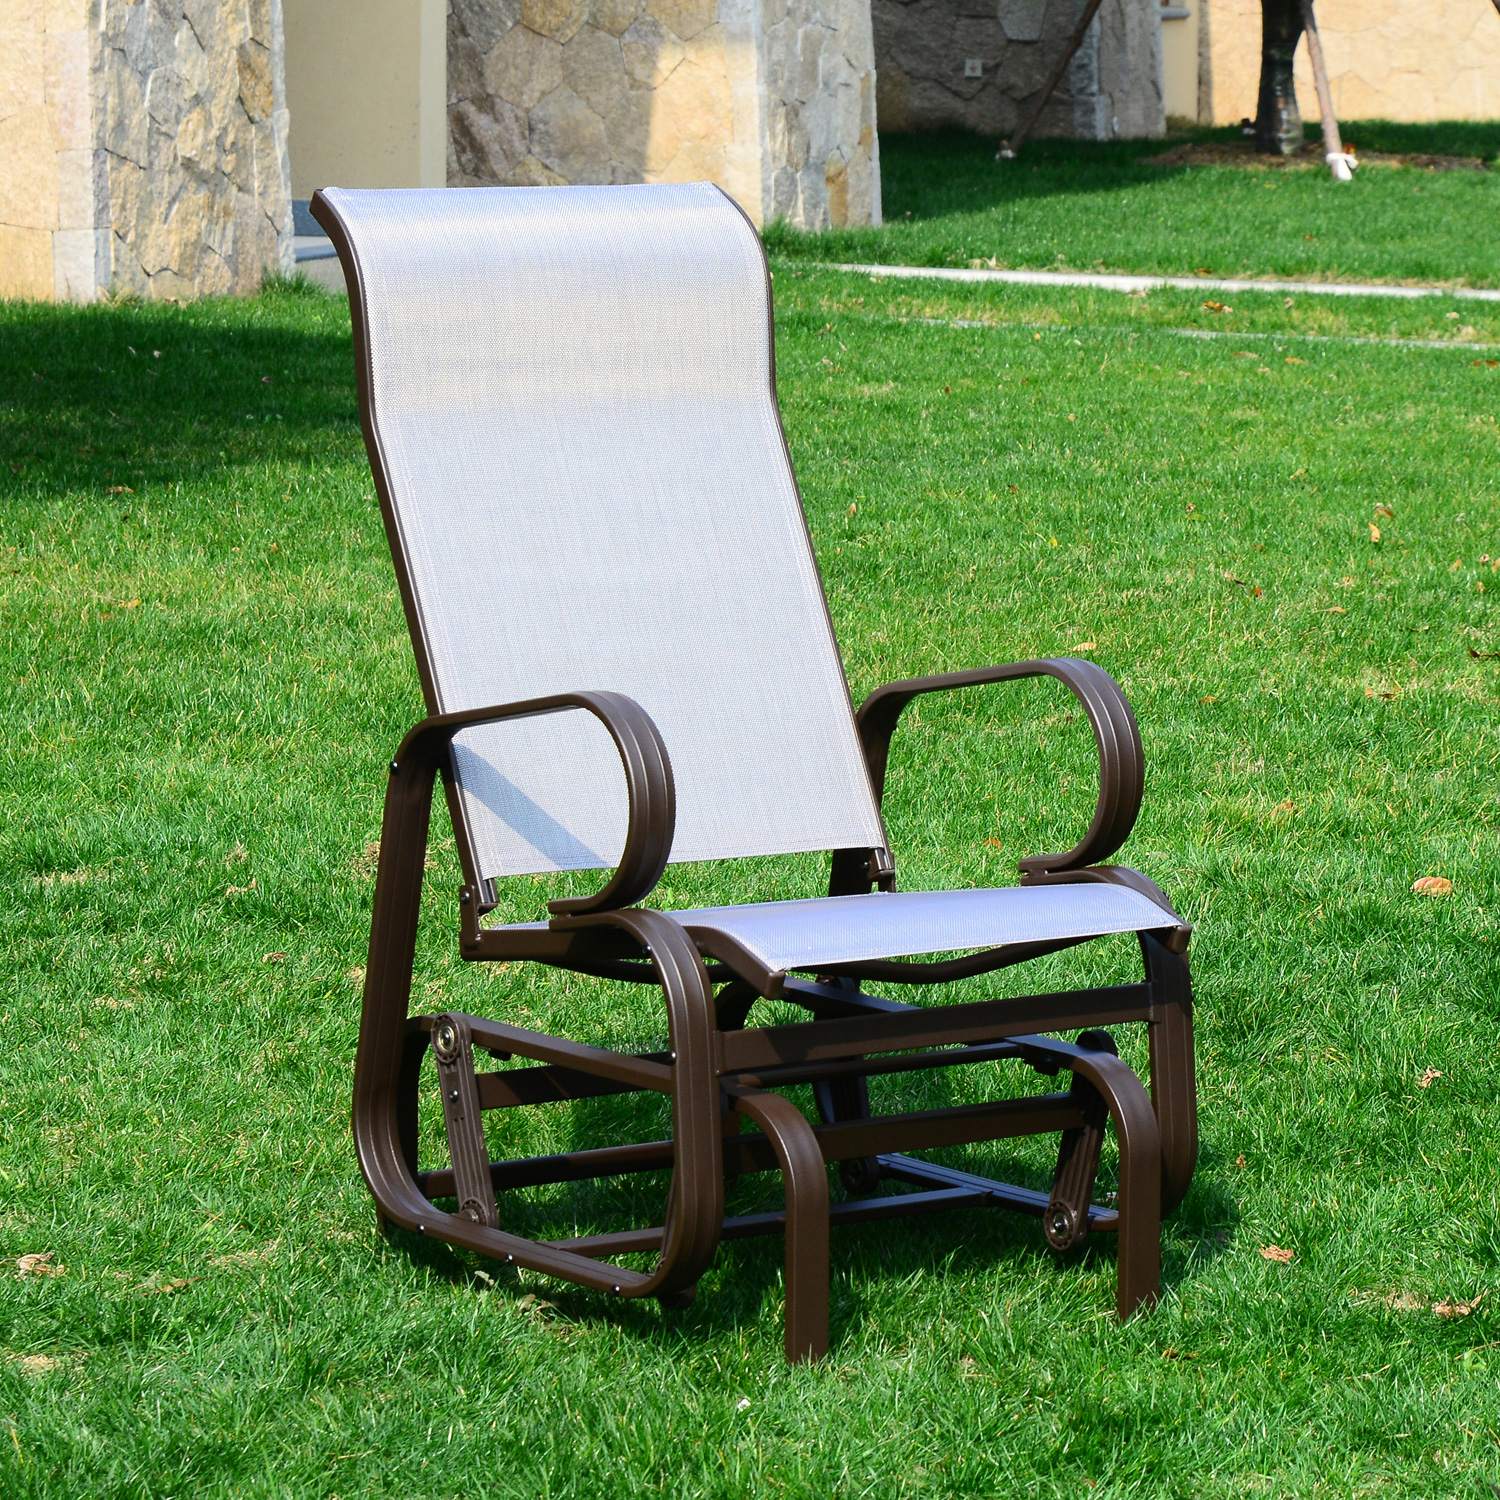 Image of CAD $134.99 Swing Chair Patio Wicker Lawn Seating Lounge Outdoor Porch Furniture Backyard / Outsunny Garden Gliding Rocking Glider Furniture, Brown & Beige Canada 46655320216